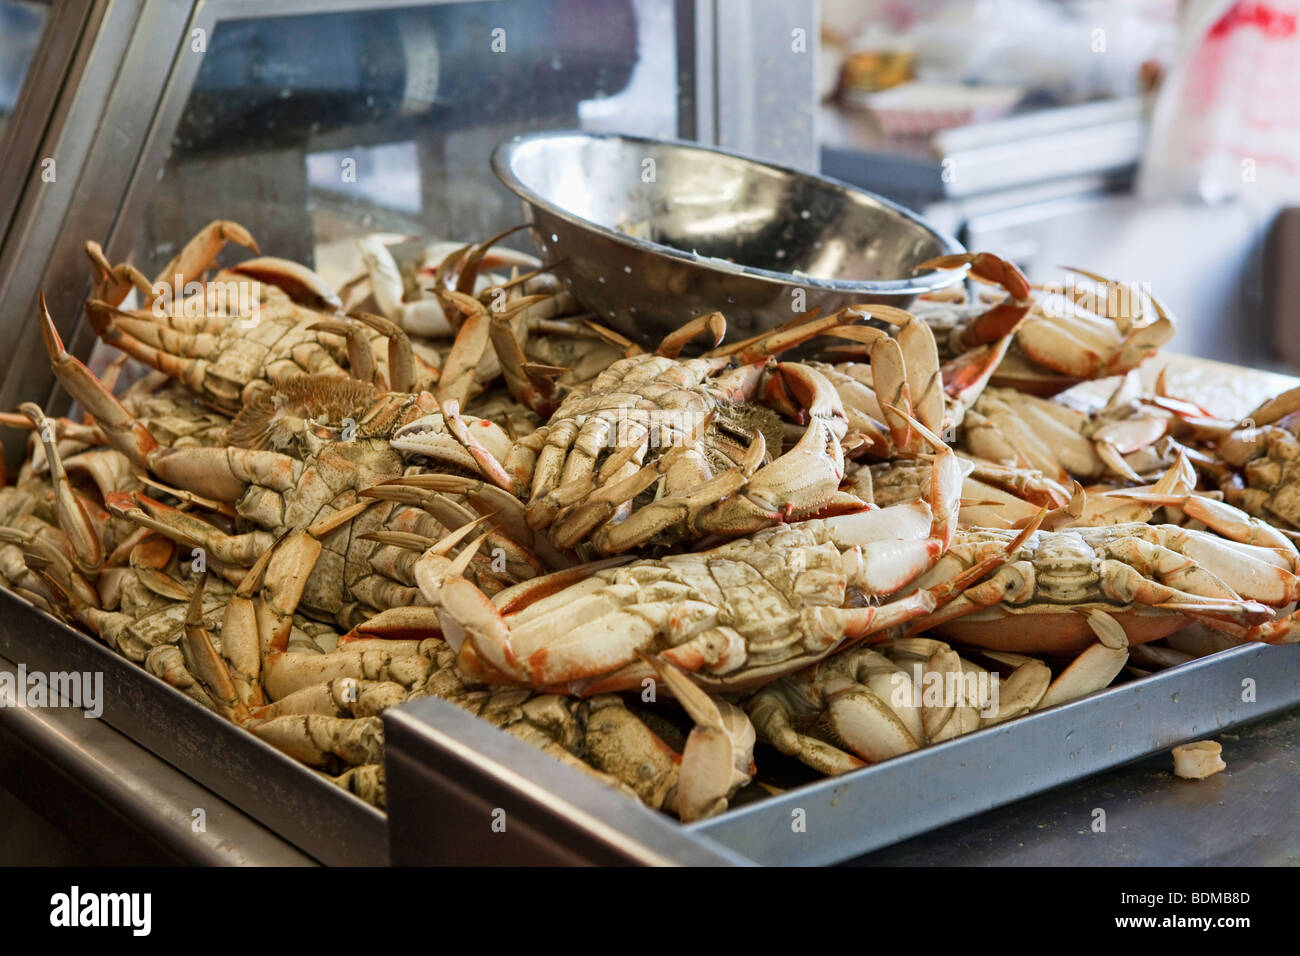 Crabs on sale at a food stall at Fisherman's Wharf in San Francisco, California, USA - Stock Image